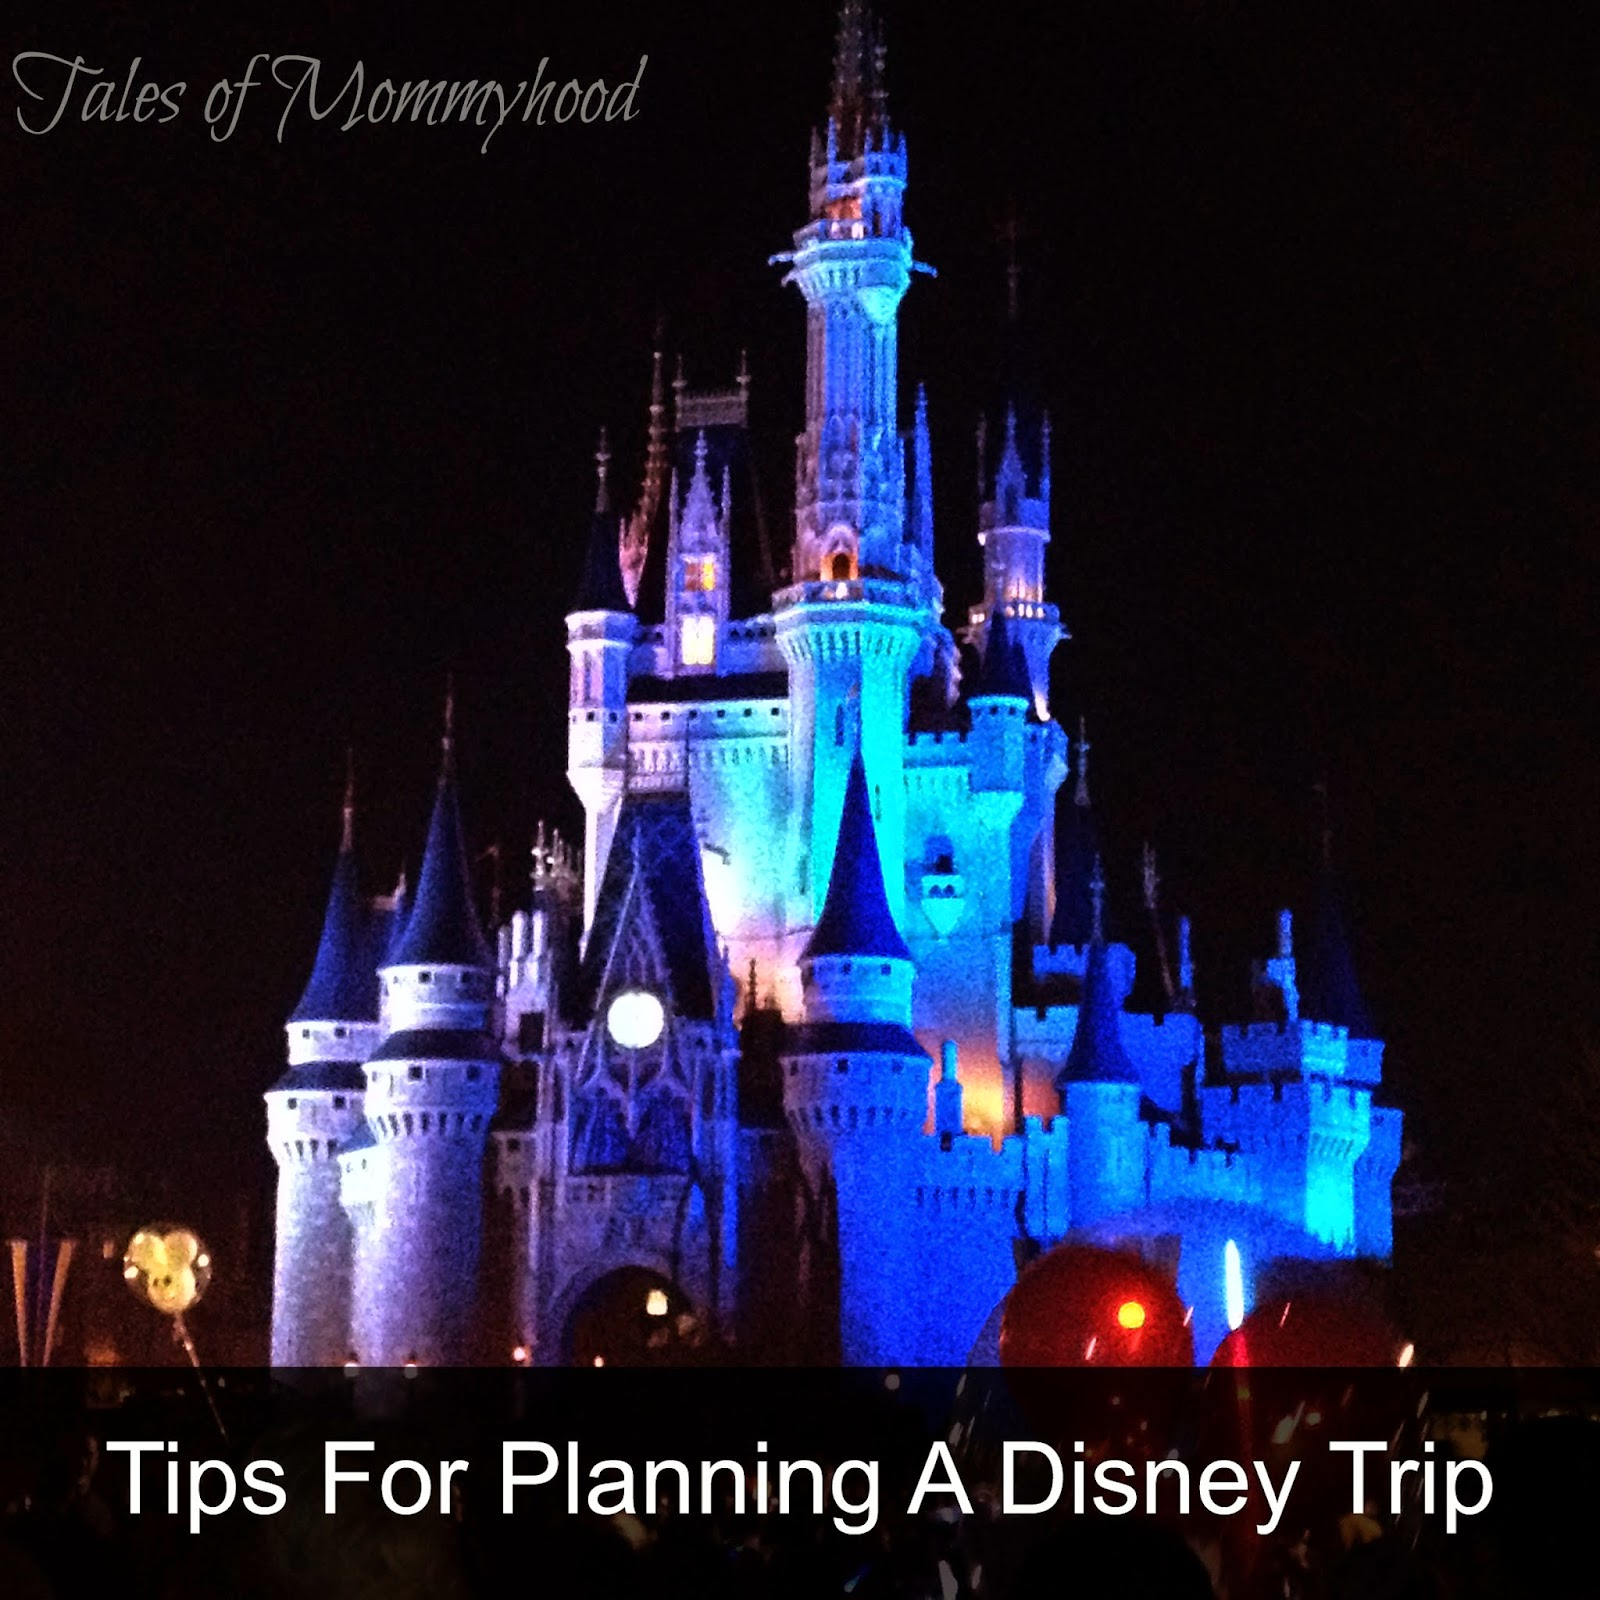 Disney, Walt Disney, family vacation, trips, florida, cinderella's castle